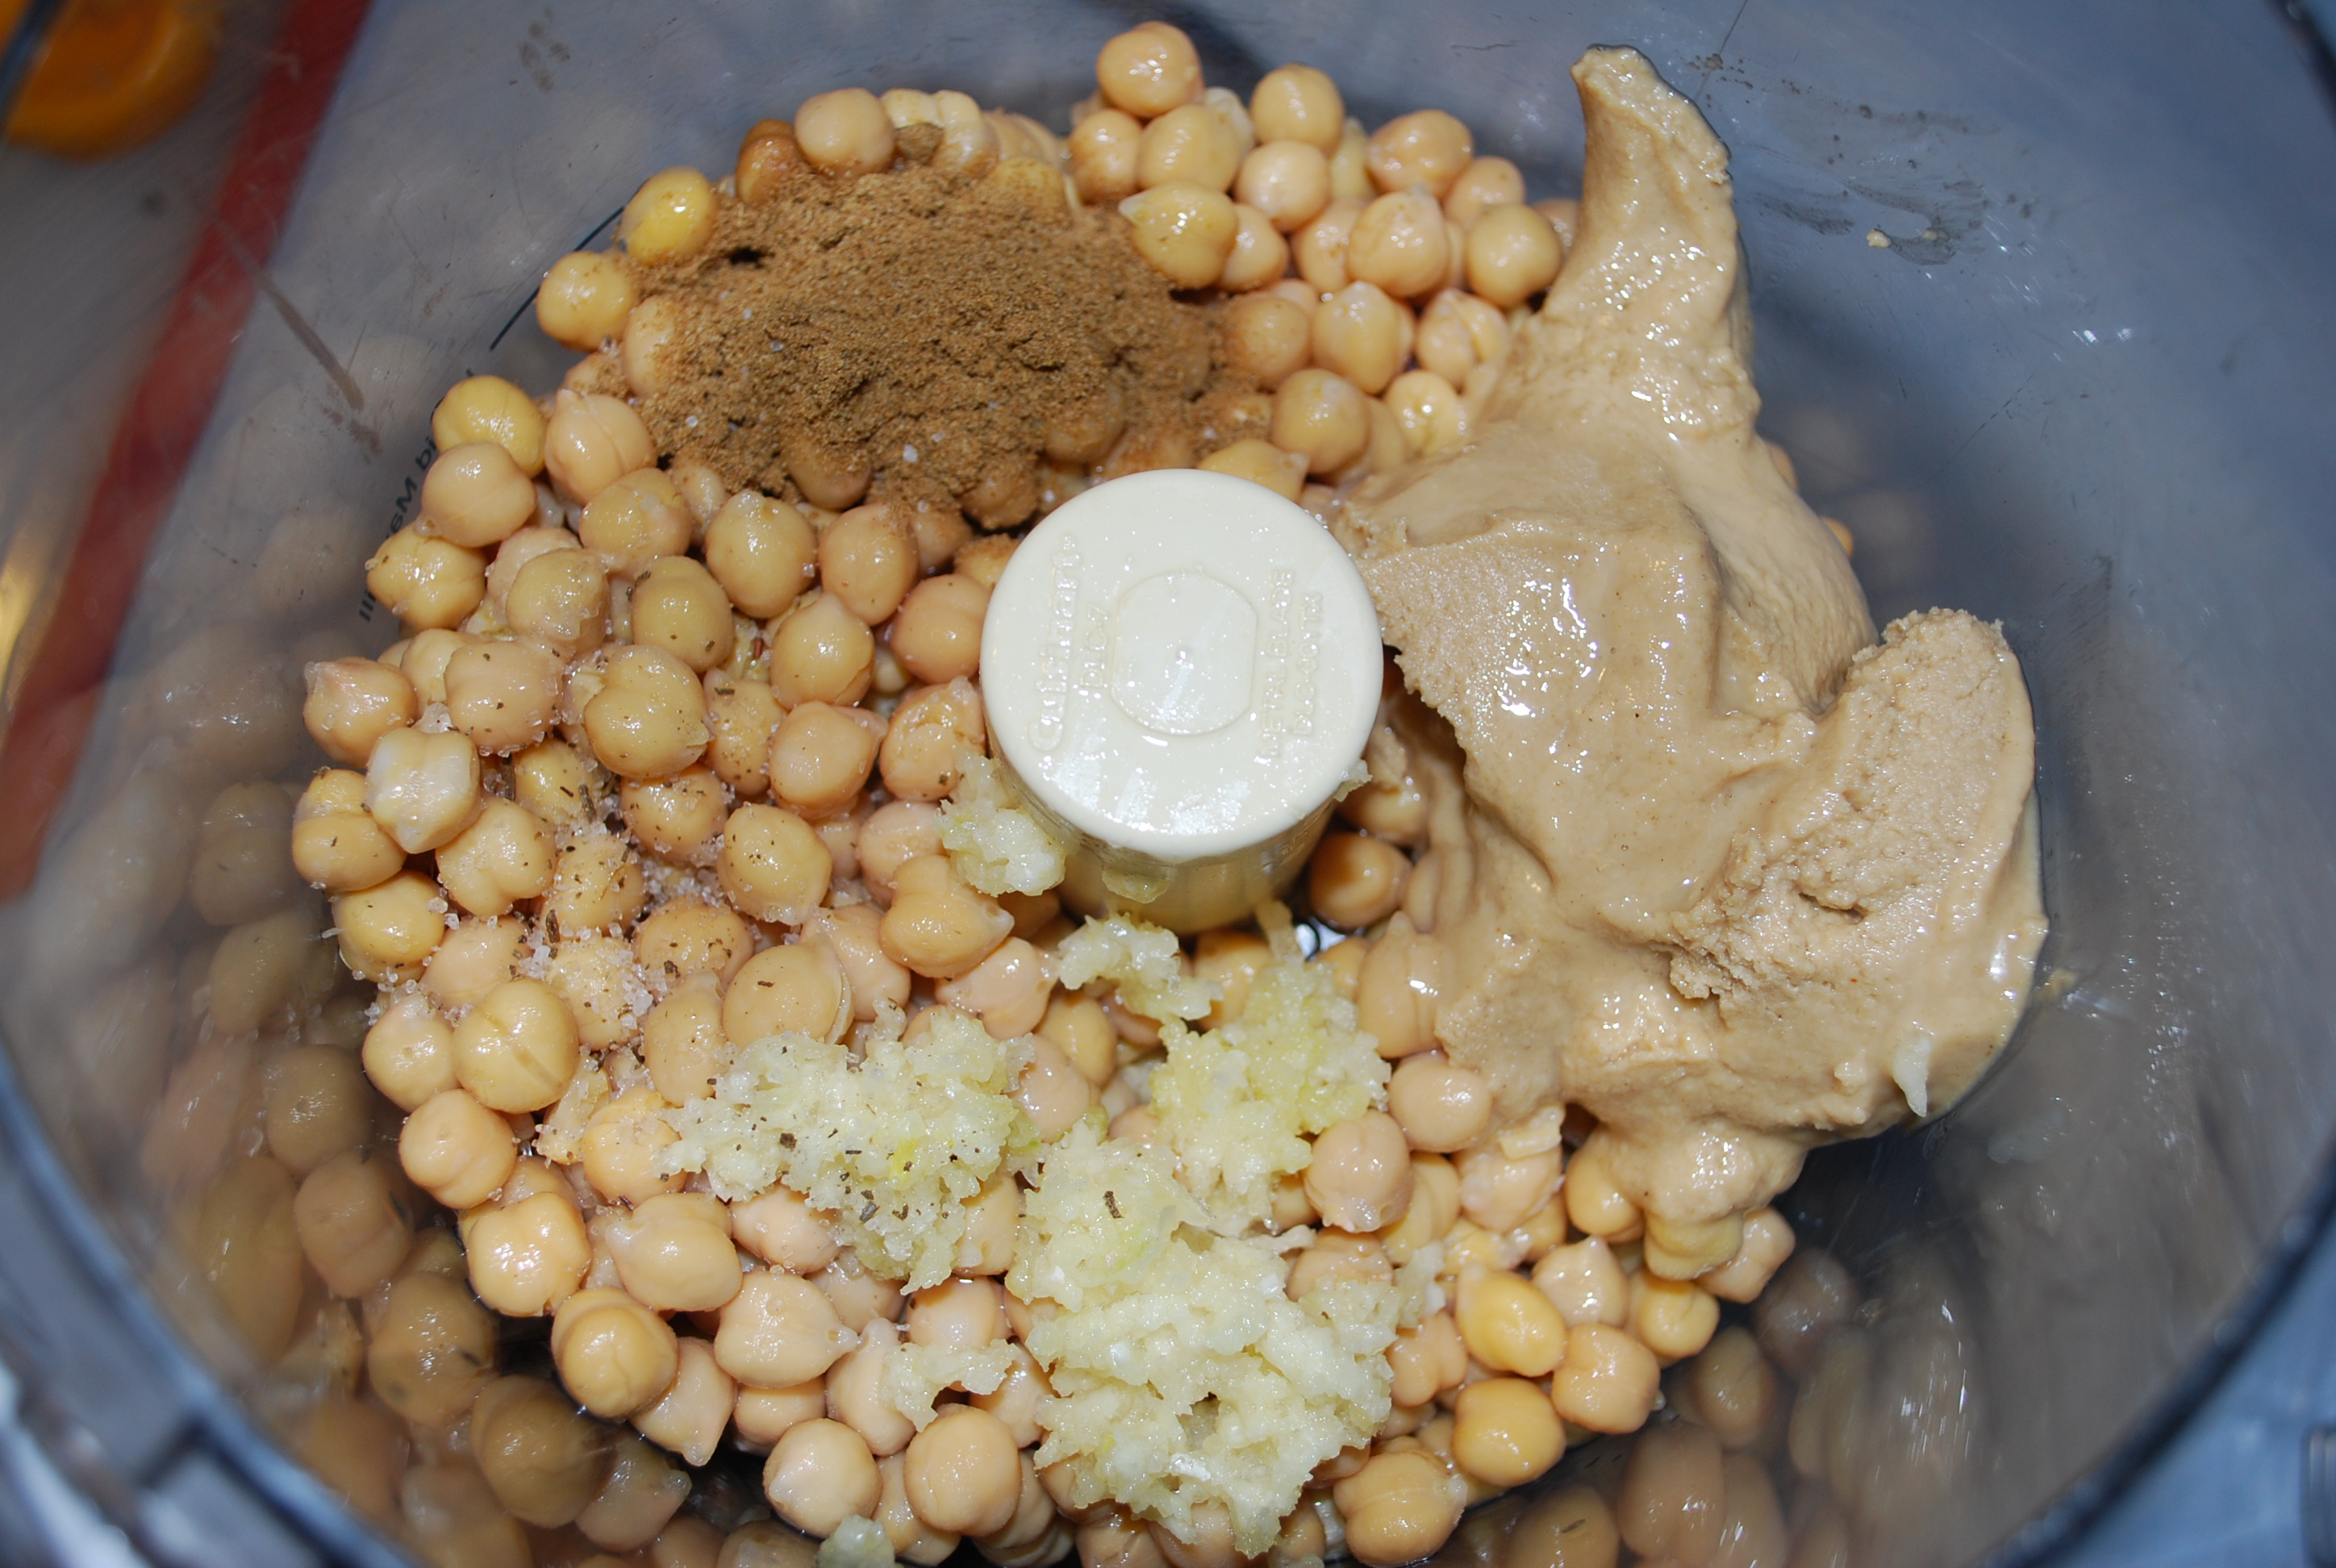 Blend ingredients in food processor until it reaches your desired consistency - use bean liquid or water to thin it out.